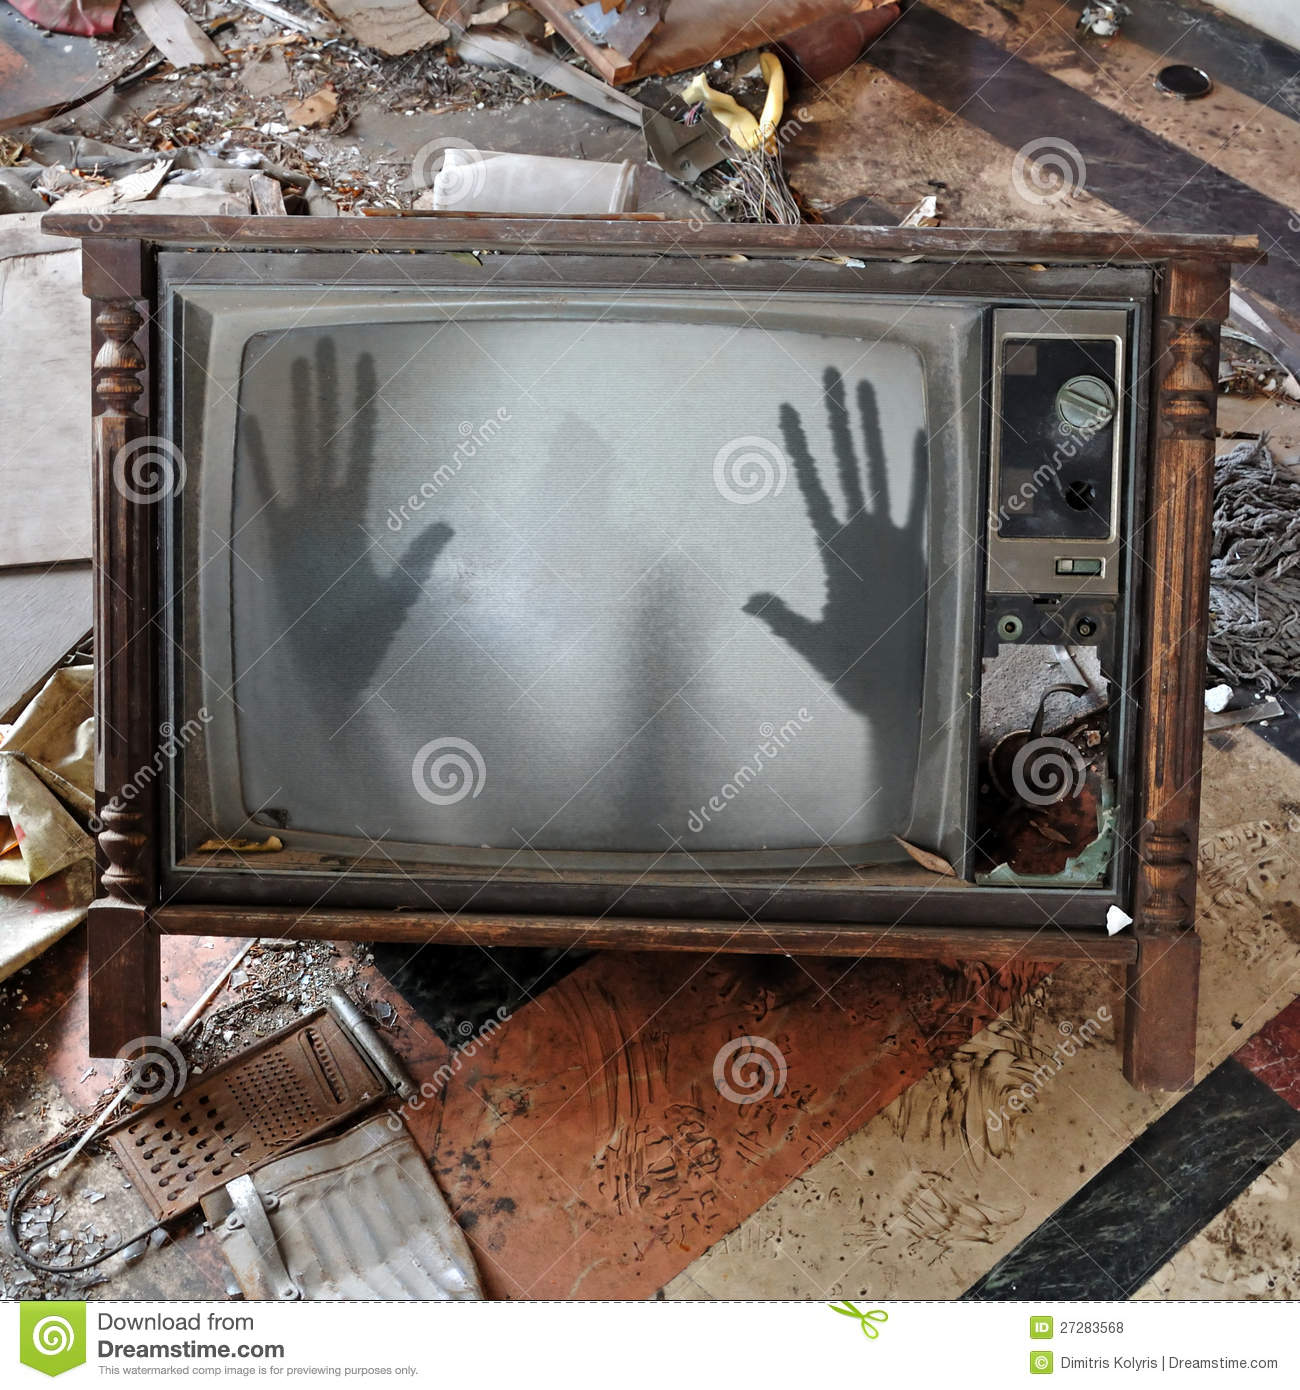 ghost appears flickering tv set 27283568